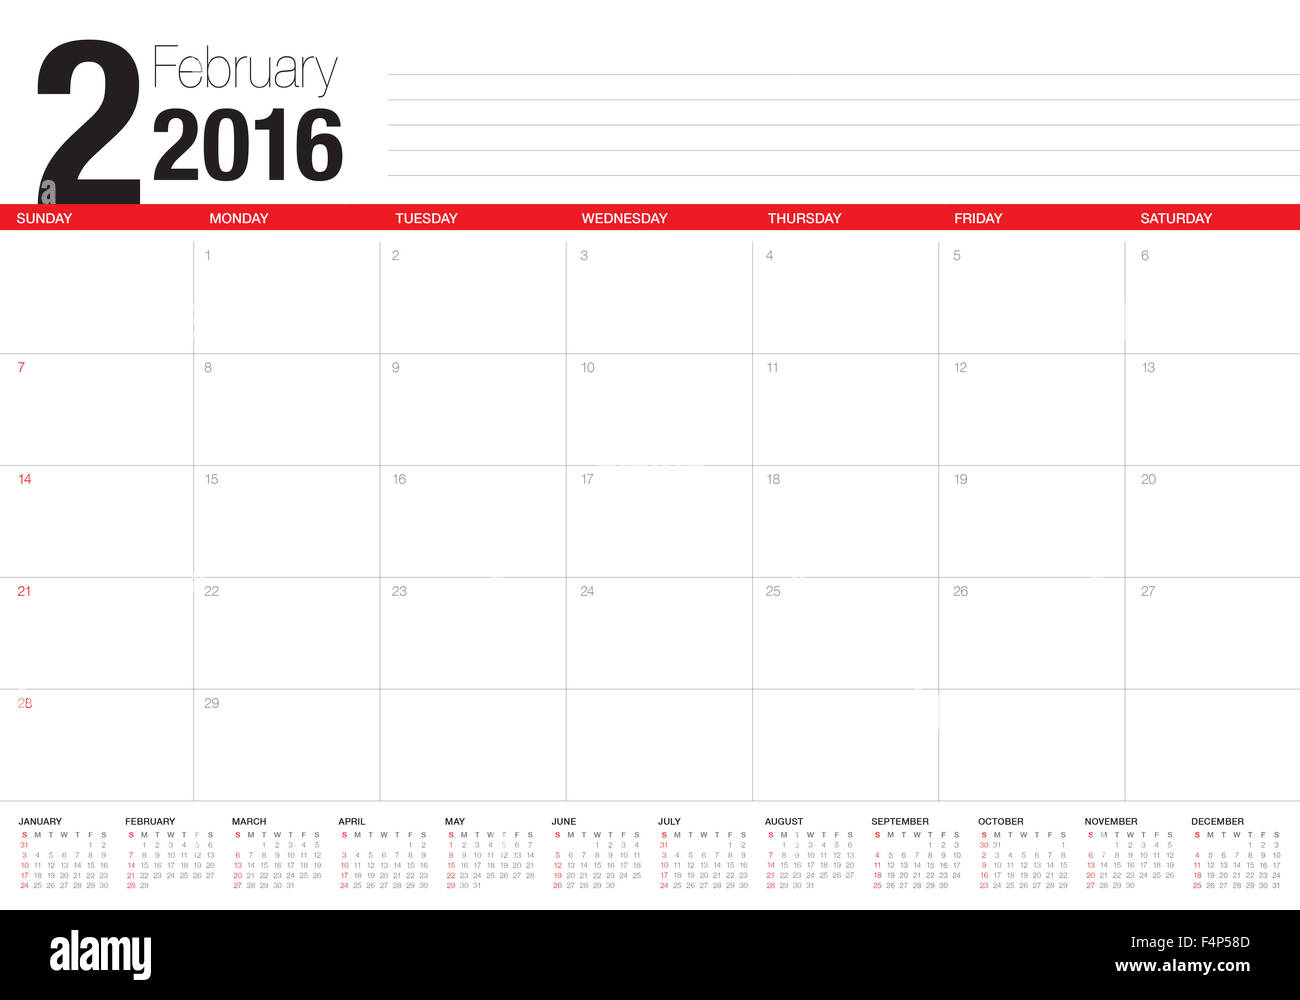 Simple table calendar for 2016 year - Stock Image